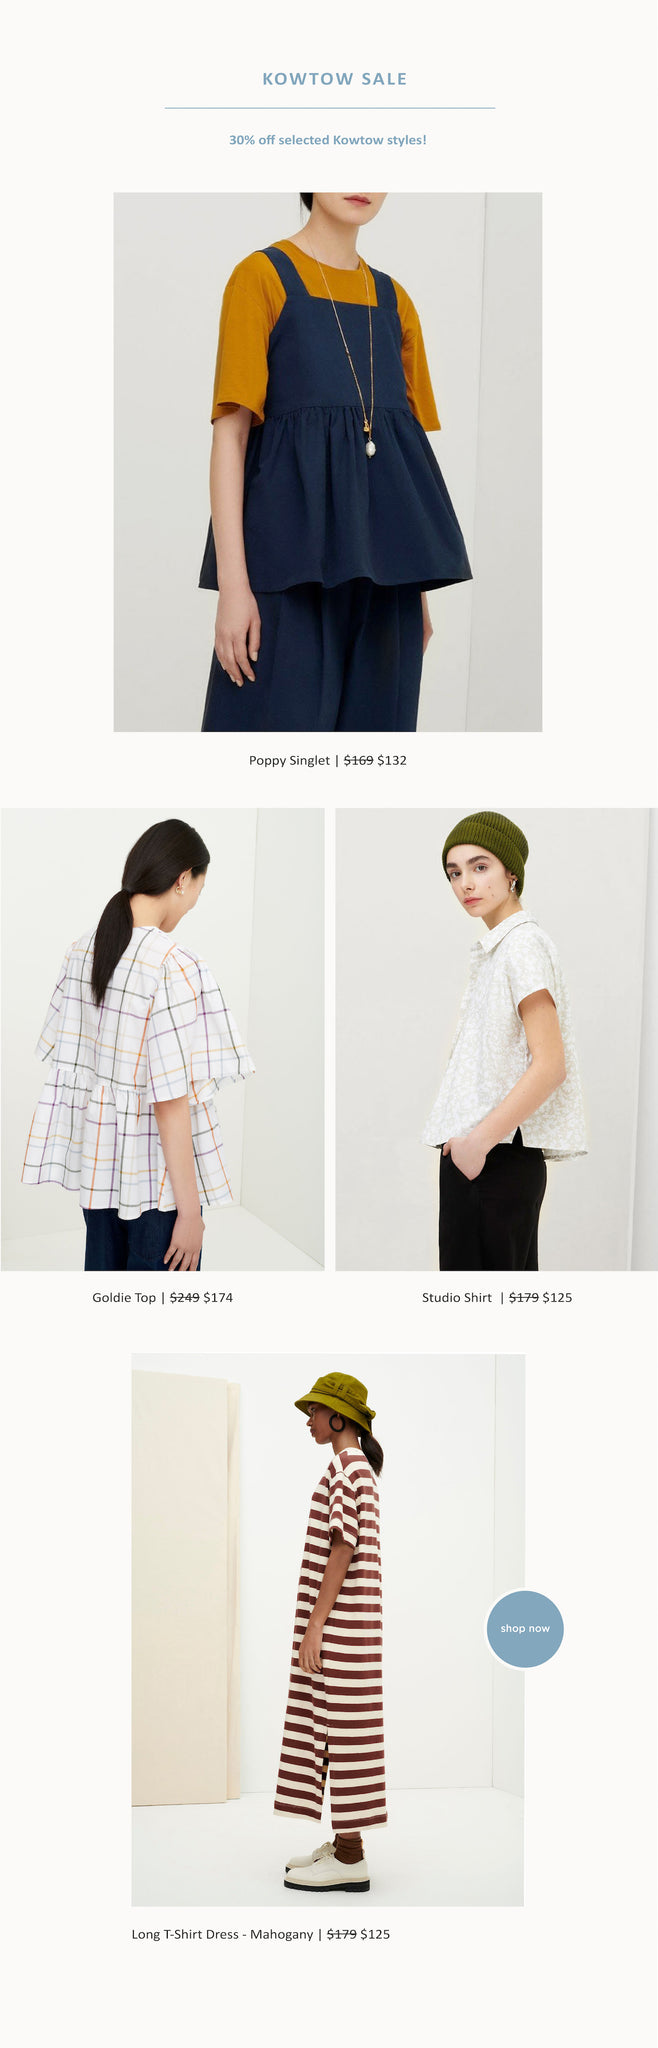 Paper Plane – Holiday – Zulu and Zephyr – Kowtow Sale